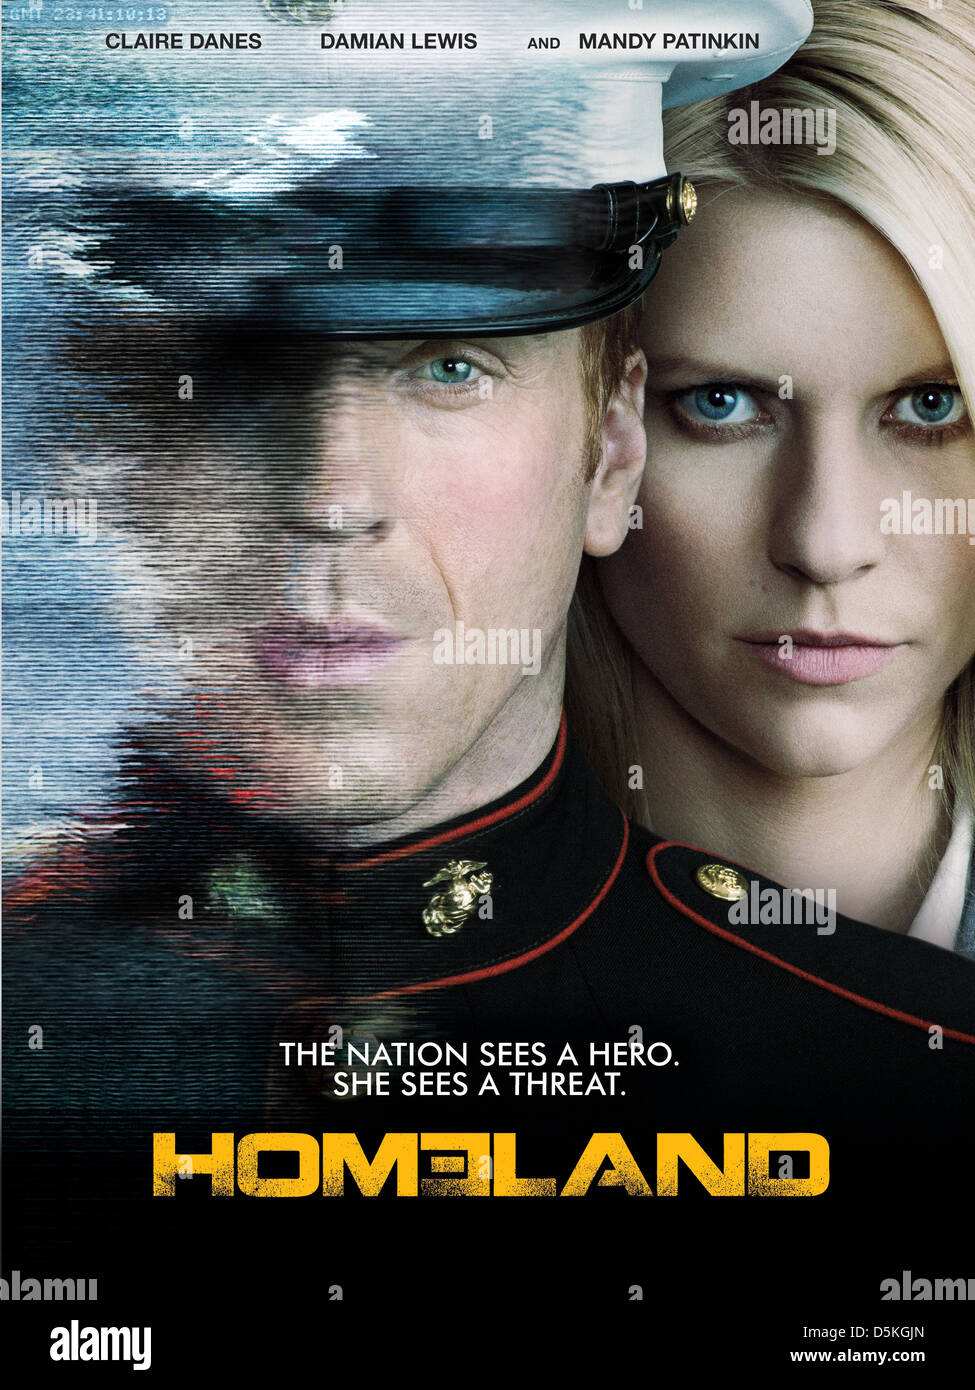 DAMIAN LEWIS & CLAIRE DANES POSTER HOMELAND (2011) - Stock Image